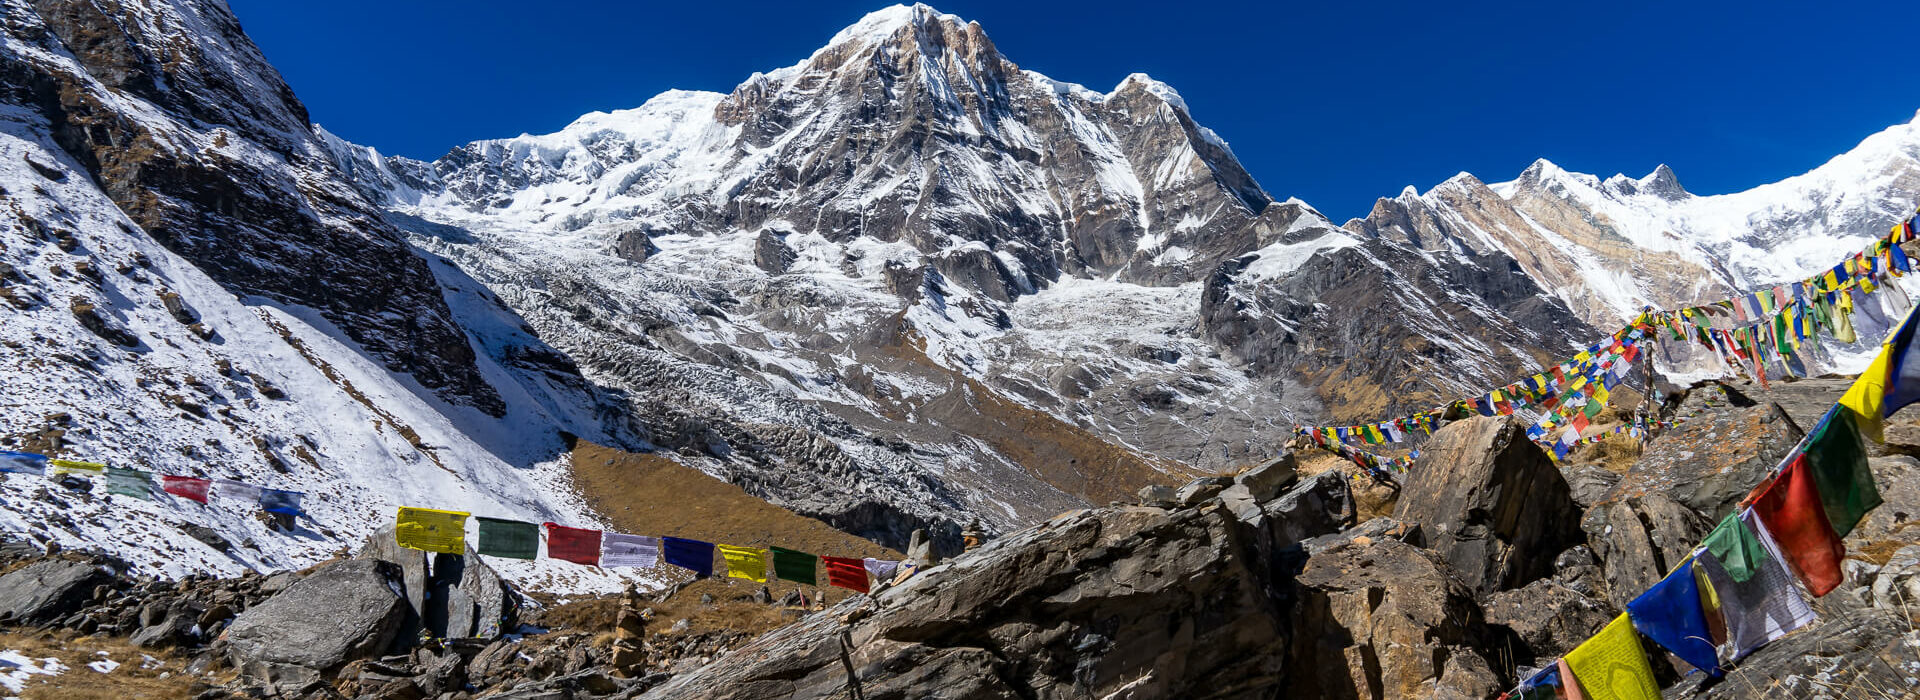 Annapurna Base Camp with Earth's Edge 5